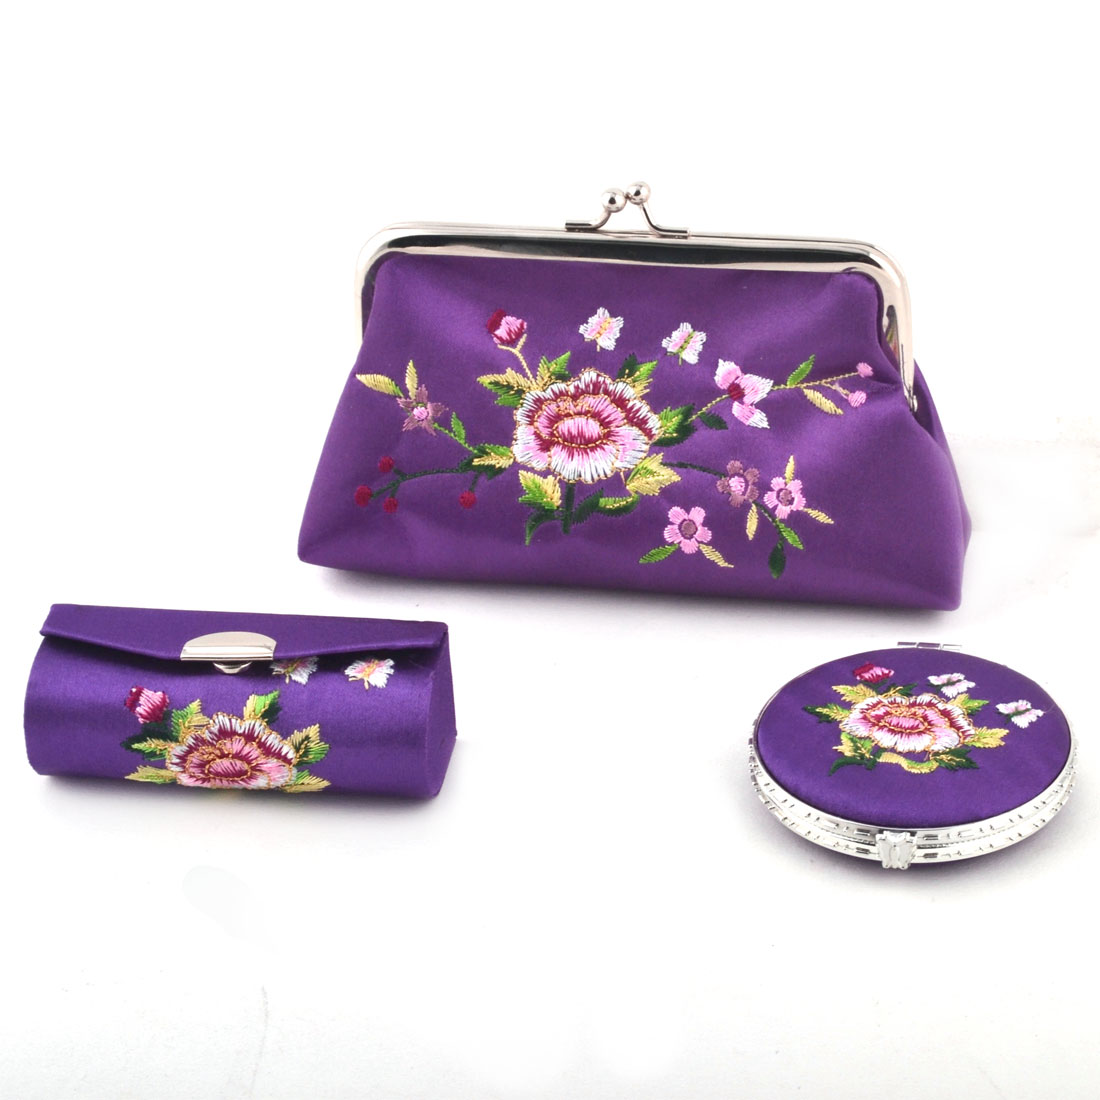 Lady Mercery Flower Print Classical Style Wallet Mirror Jewelry Make-up Box Set Purple